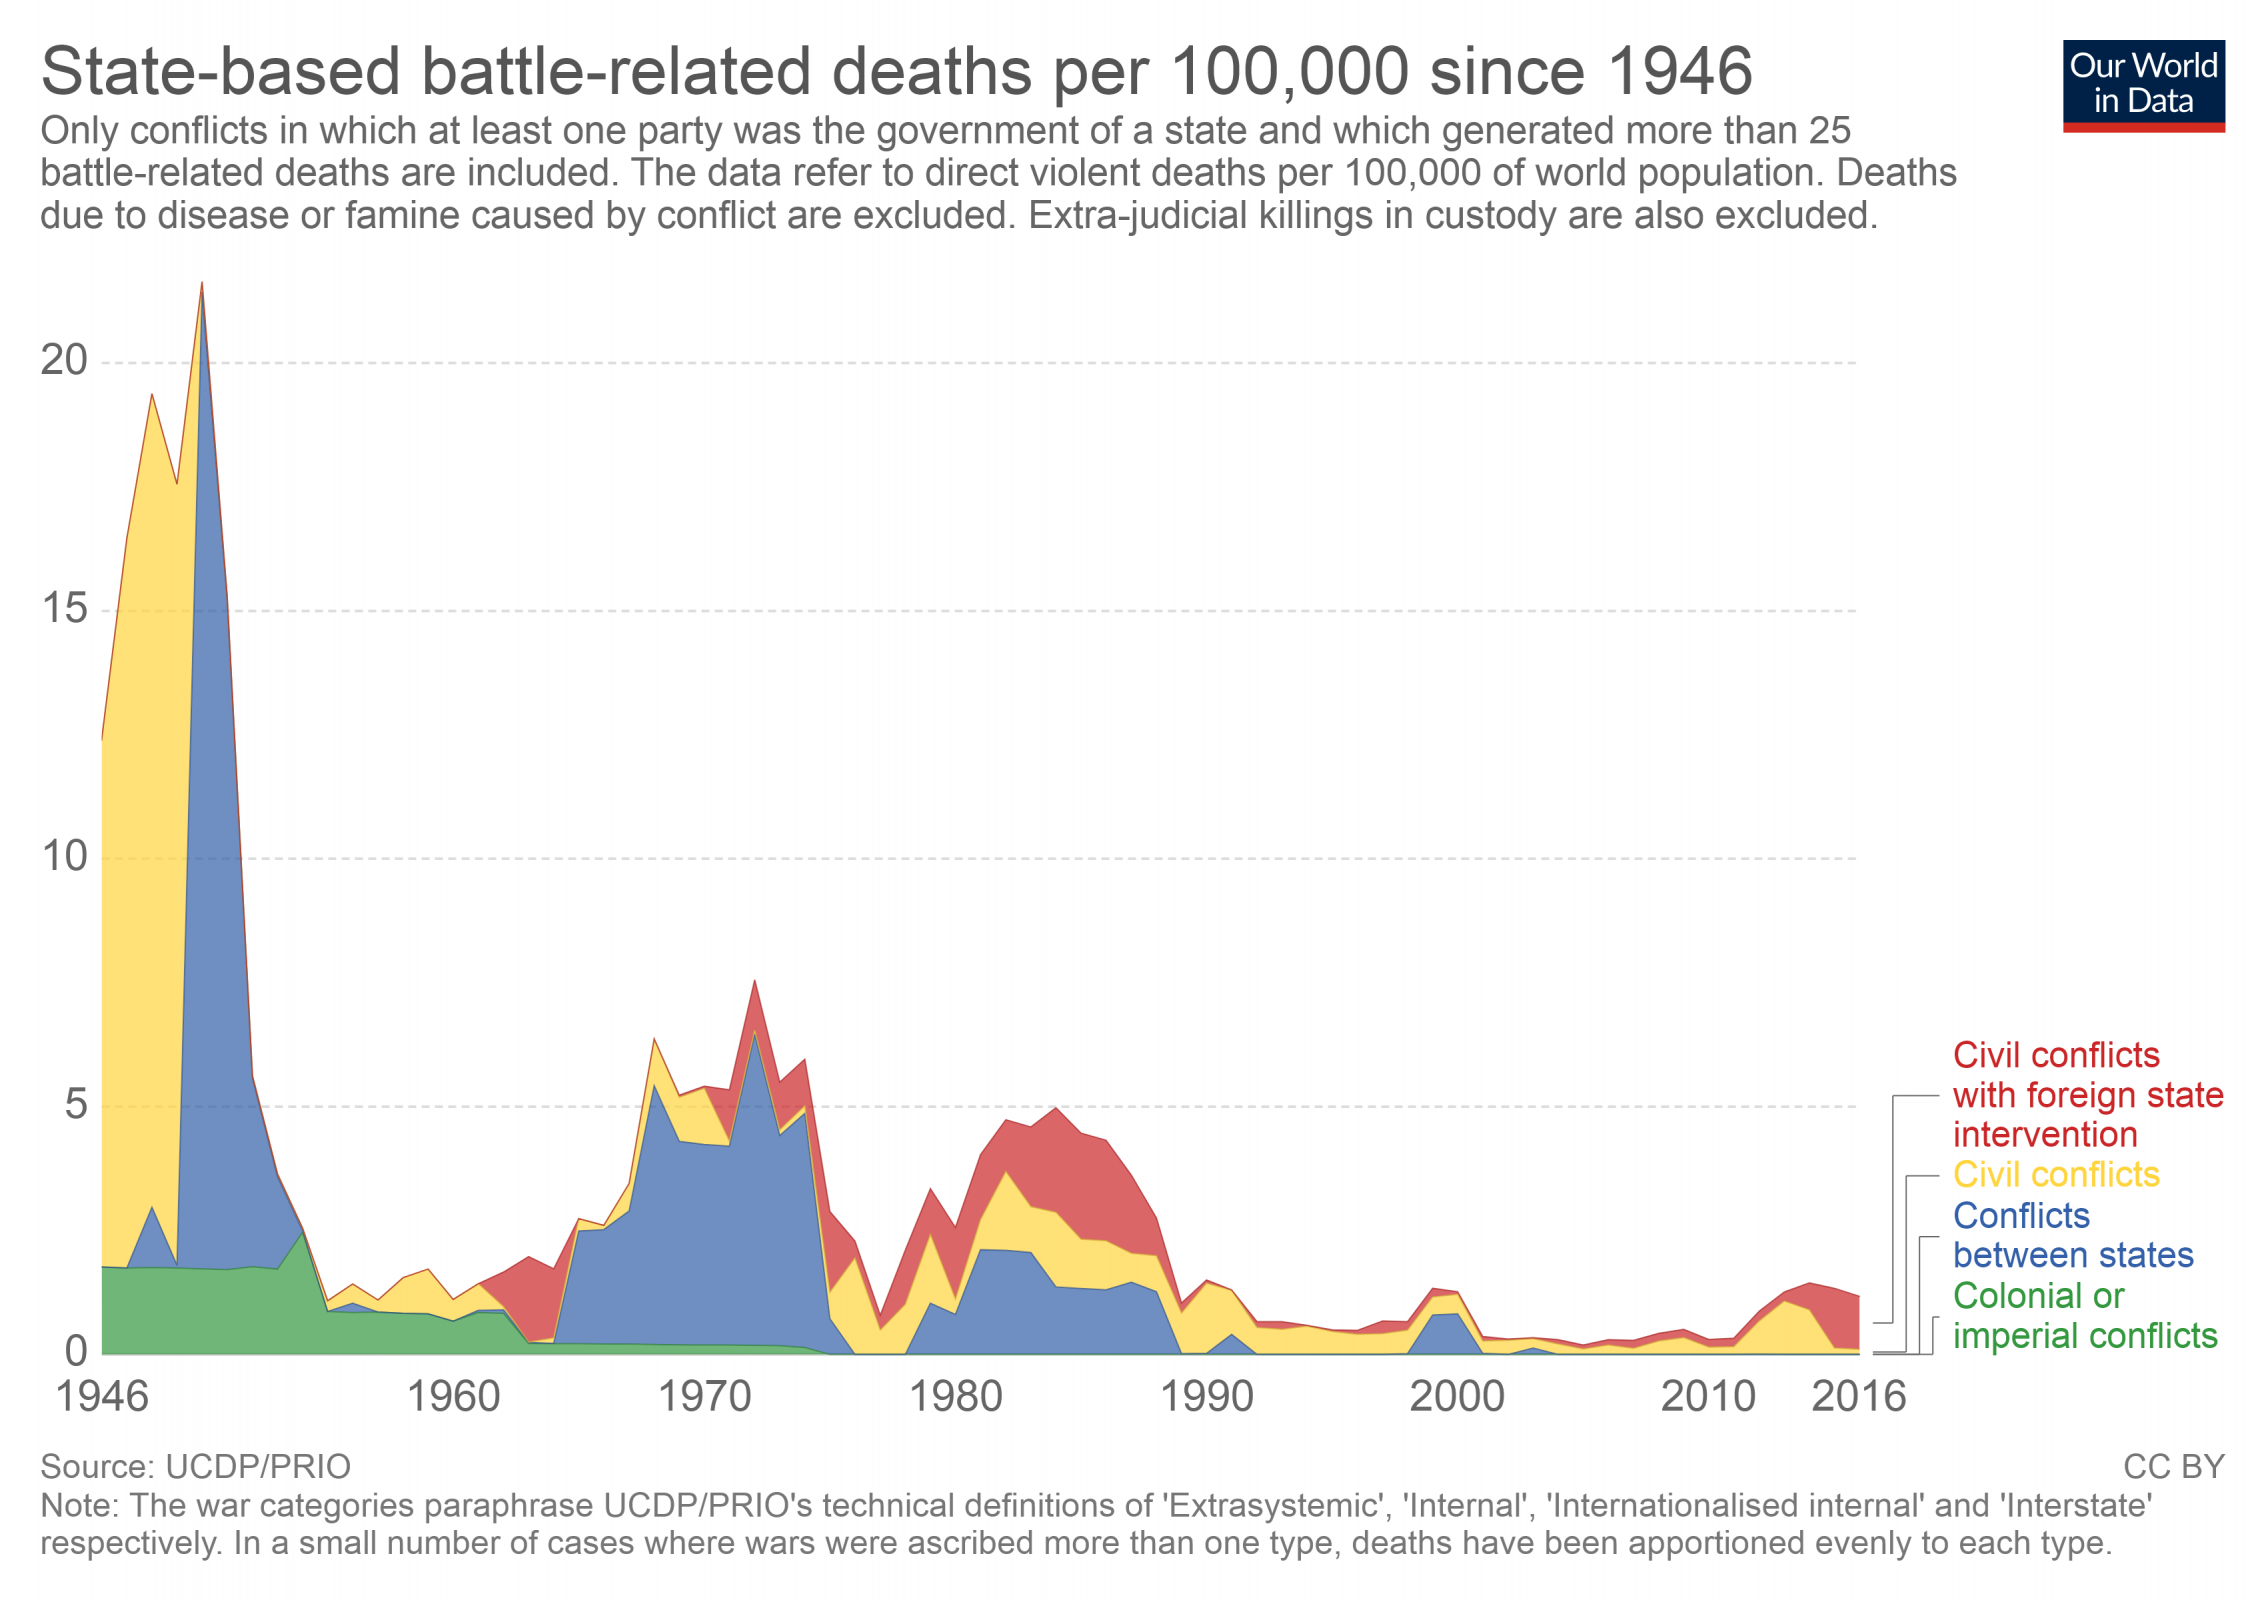 state-based-battle-related-deaths-per-100000-since-1946.png